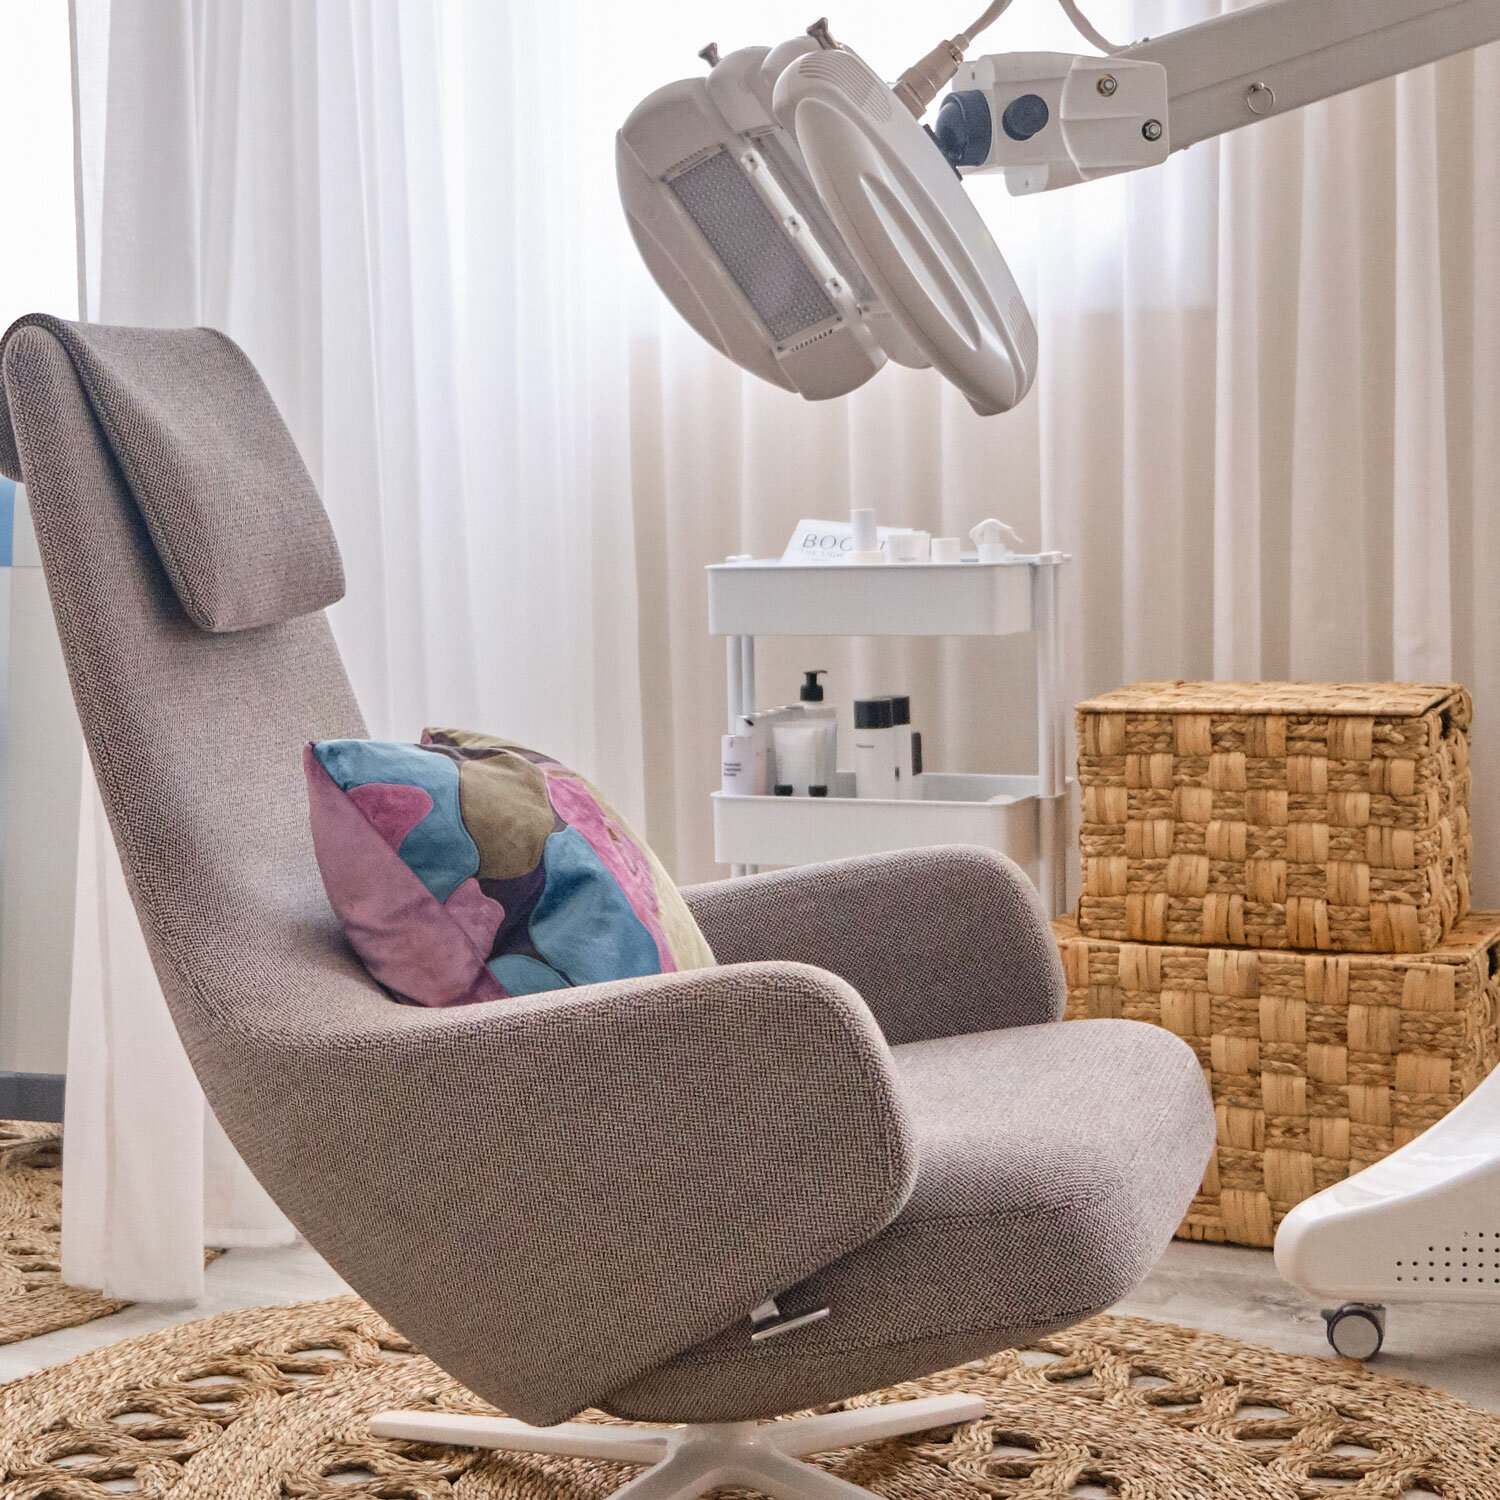 ADVANCED LED - The Light Salon provides powerful, Advanced LED light therapy facials and body treatments using the latest generation of LED technology.